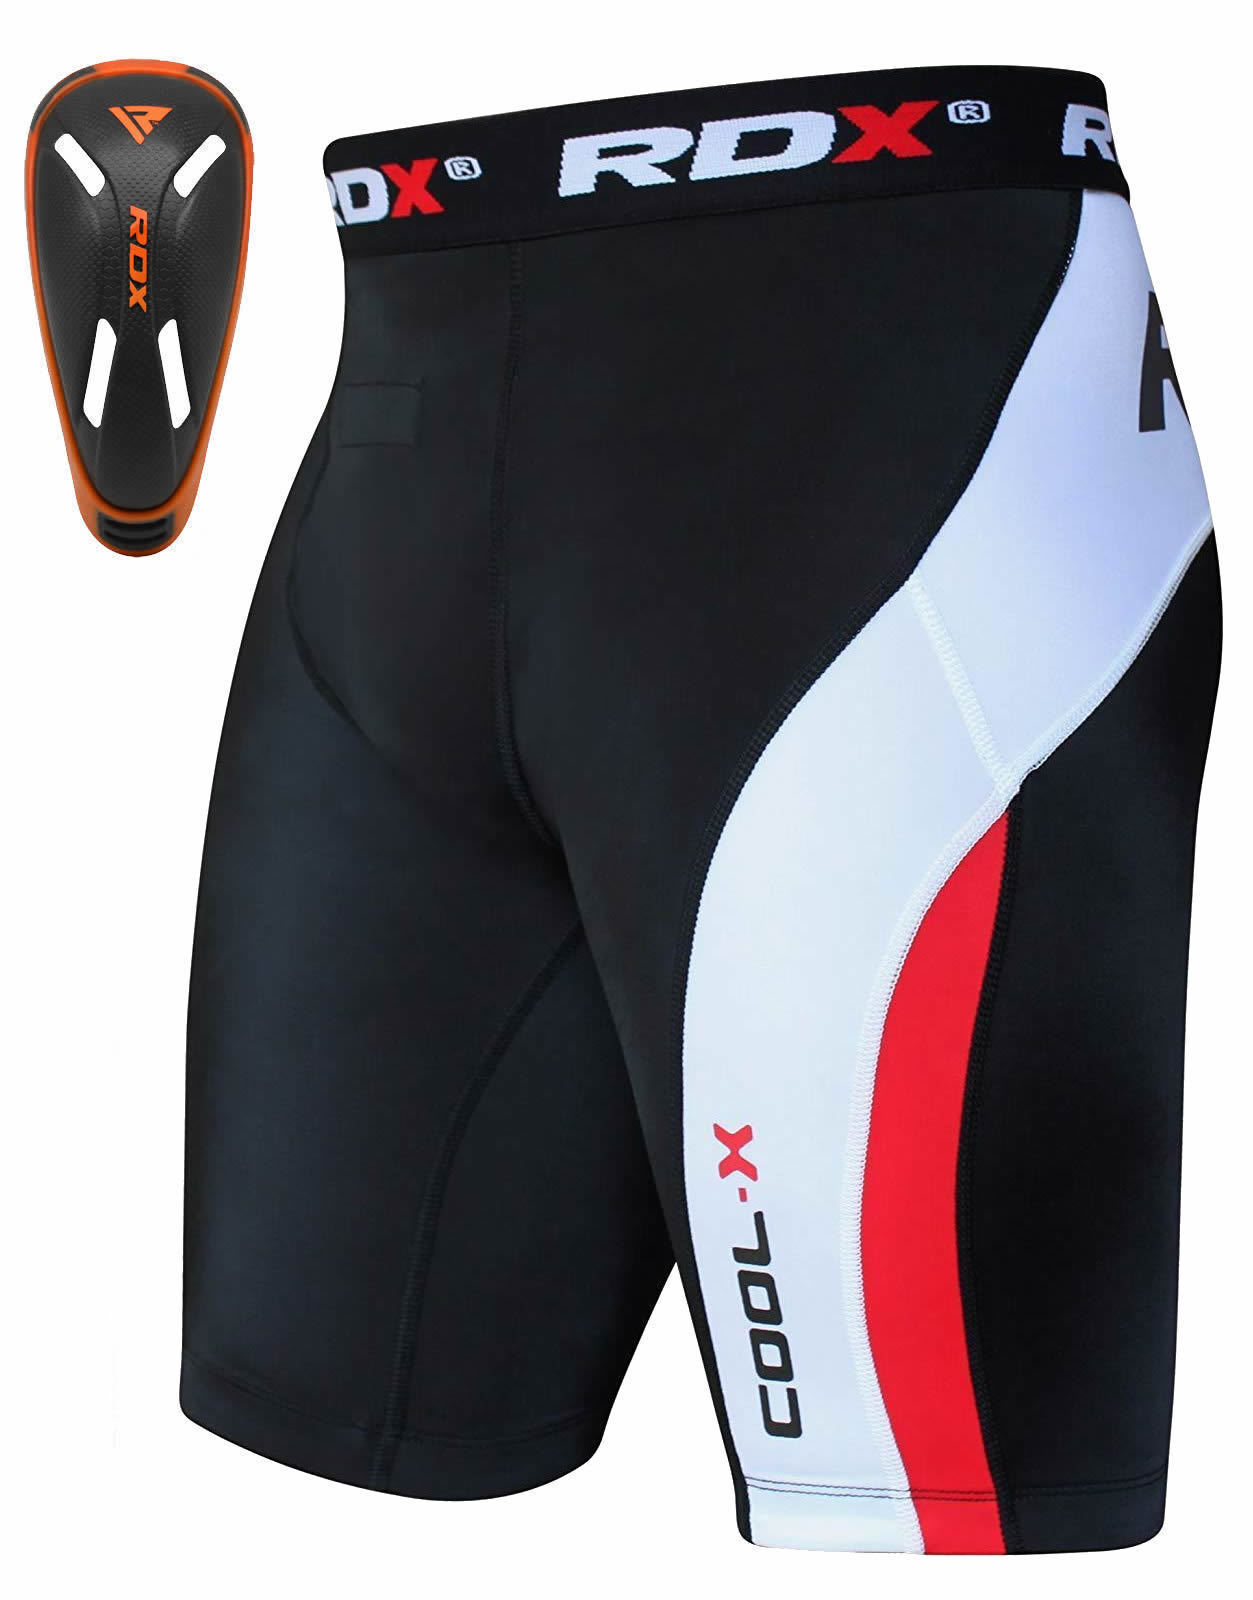 RDX Mens Compression Shorts Sports Briefs skin tight fit gym Running Base layer